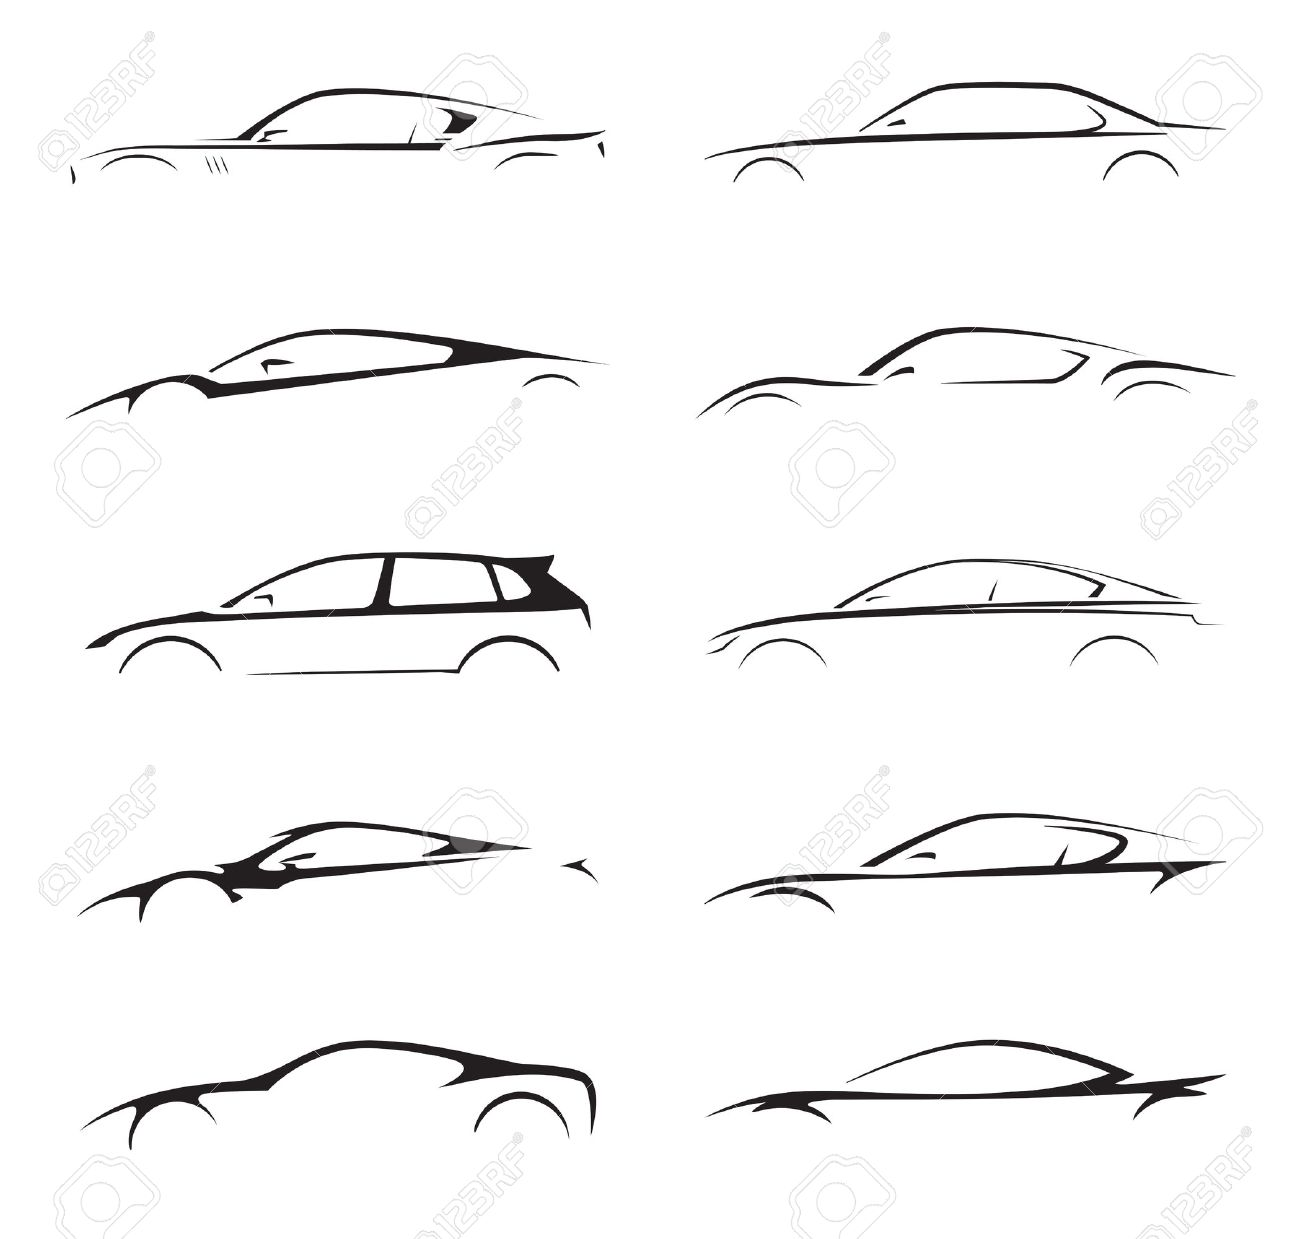 Concept Supercar Sports Car And Sedan Motor Vehicle Silhouette